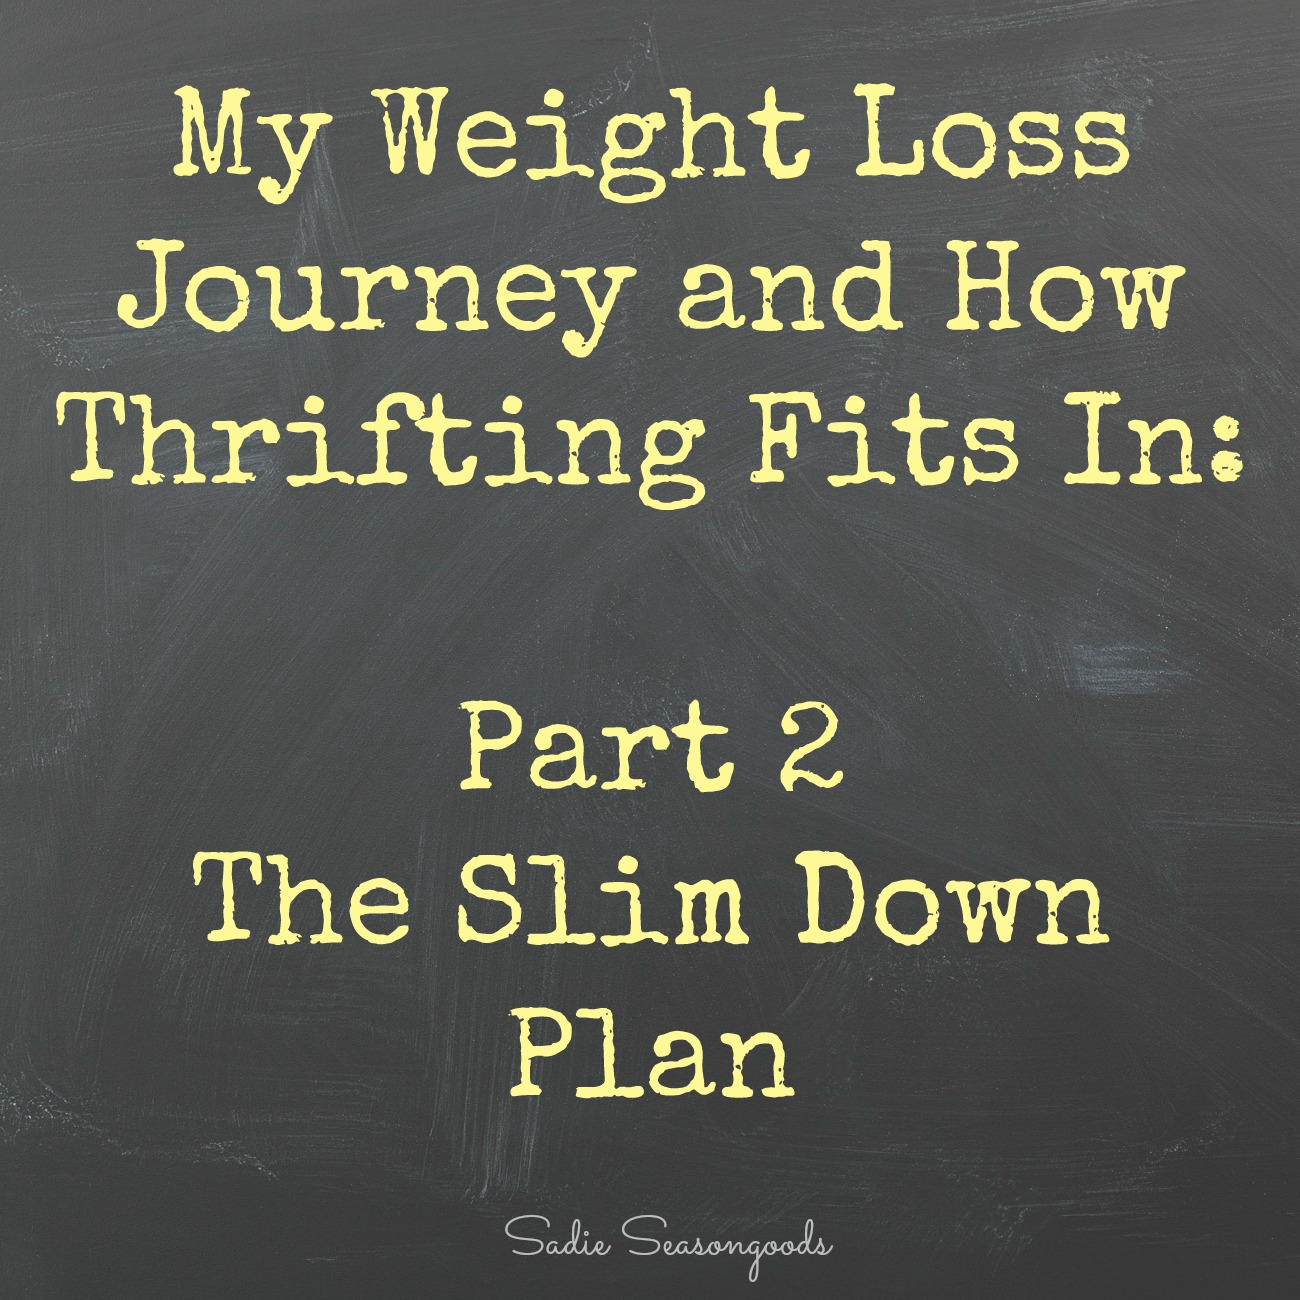 My Weight Loss Plan – Lose Weight Naturally